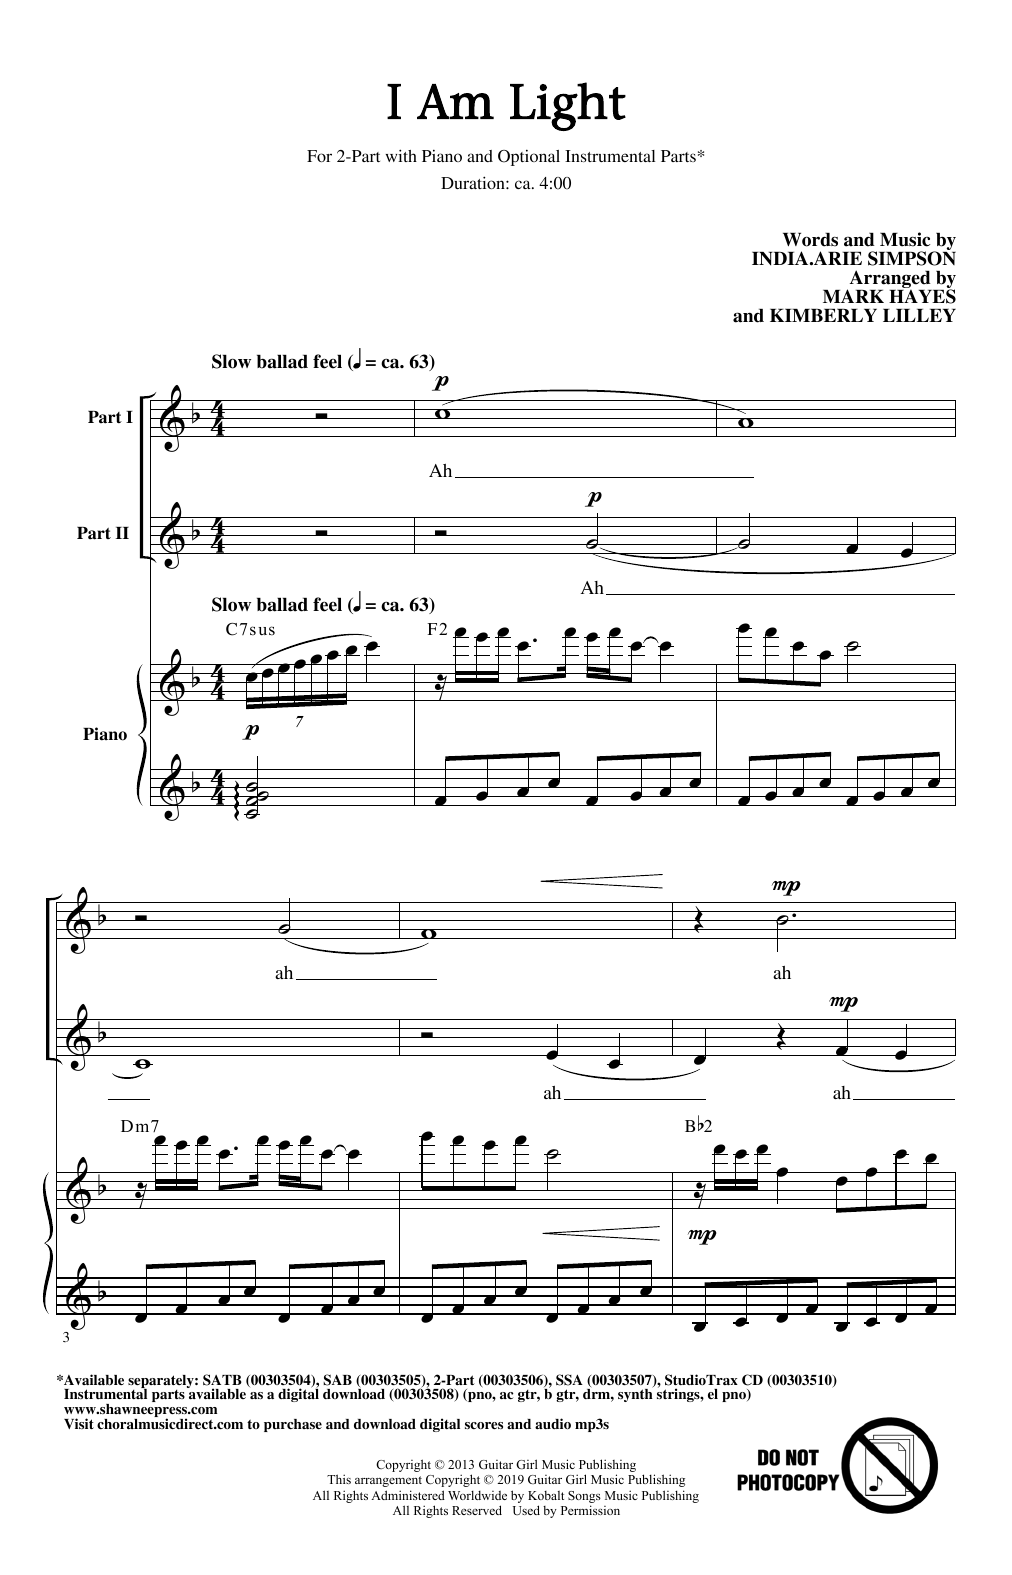 I Am Light (arr. Mark Hayes and Kimberly Lilley) (2-Part Choir)